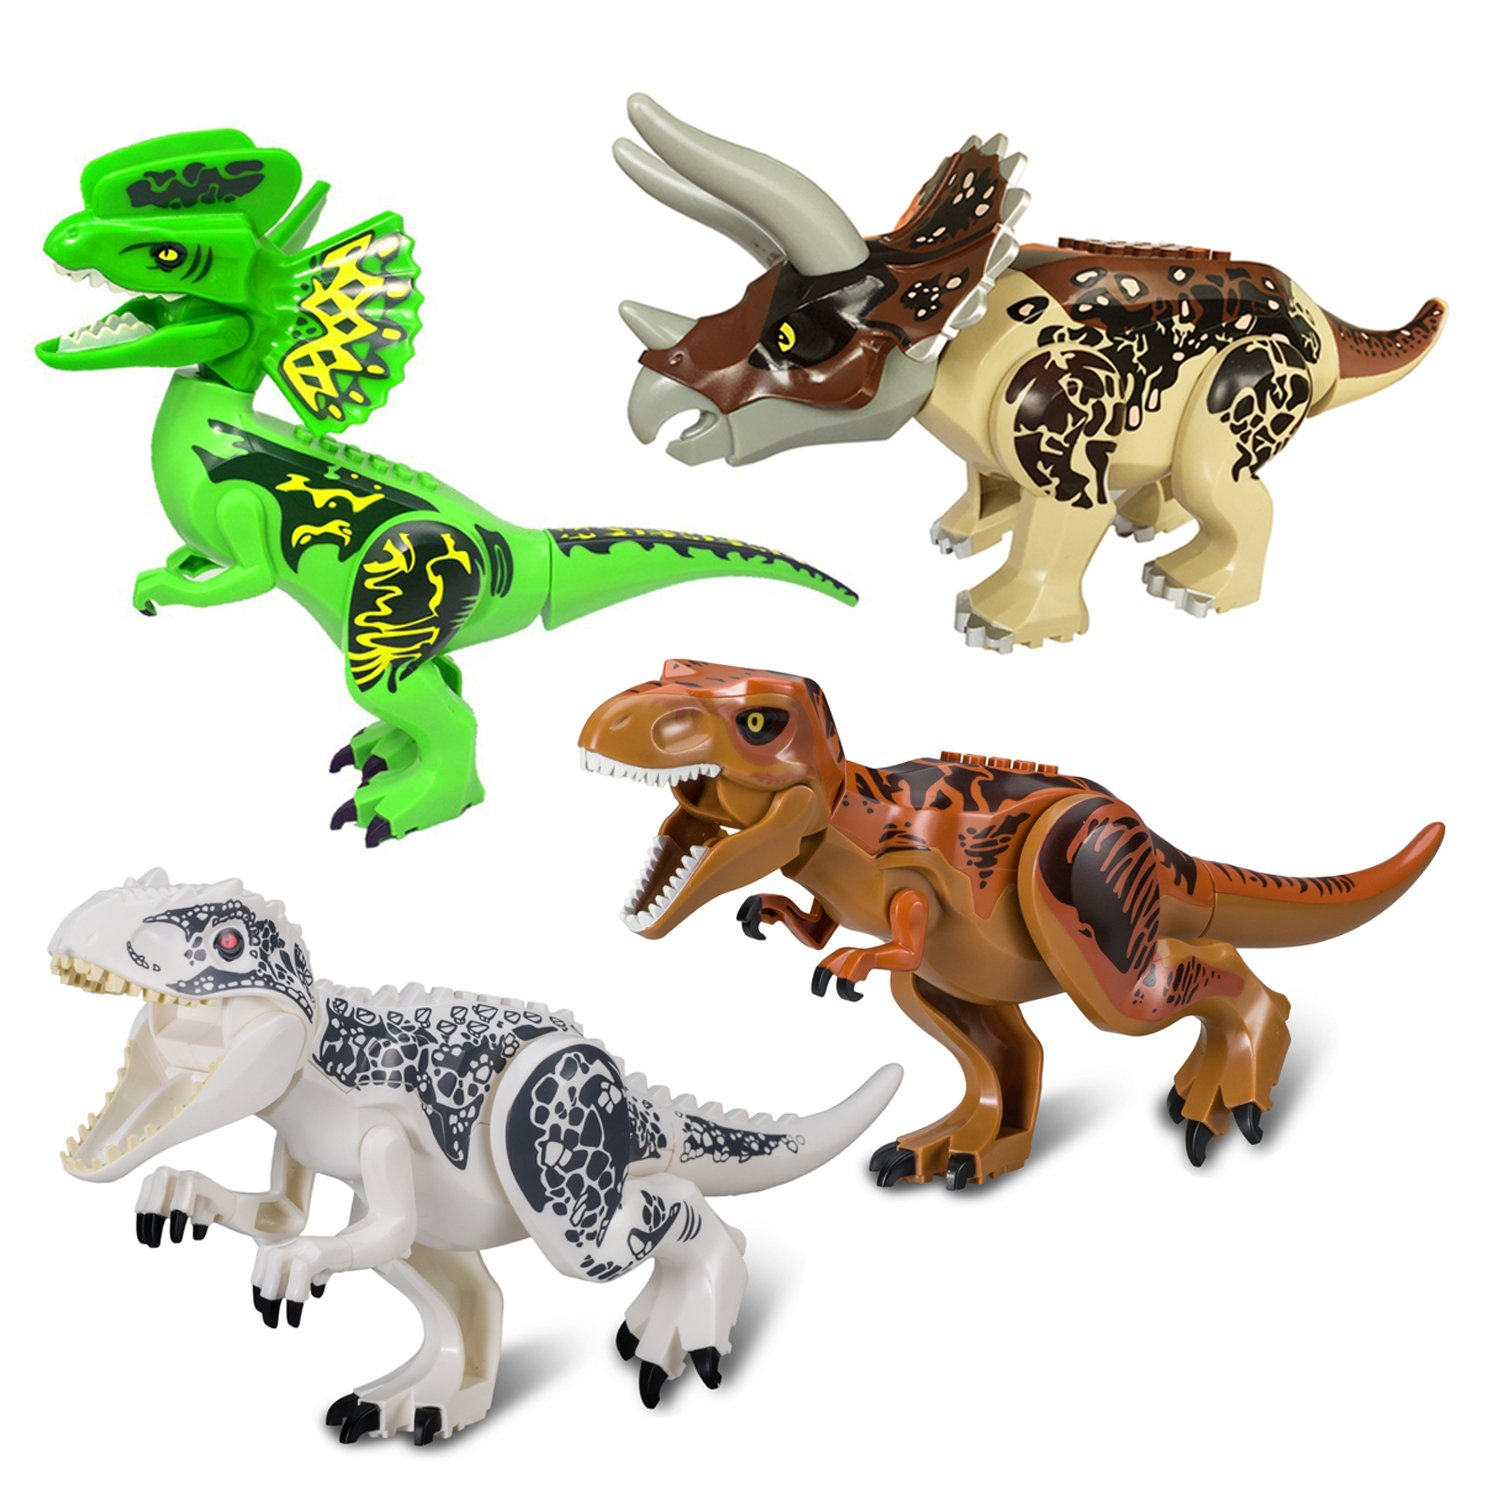 BeneGlow 8 Sets Liftlike Multicoloured 3D Jigsaw Puzzles Mini Dinosaur Building Blocks for Children BG-100045 Dinosaurs